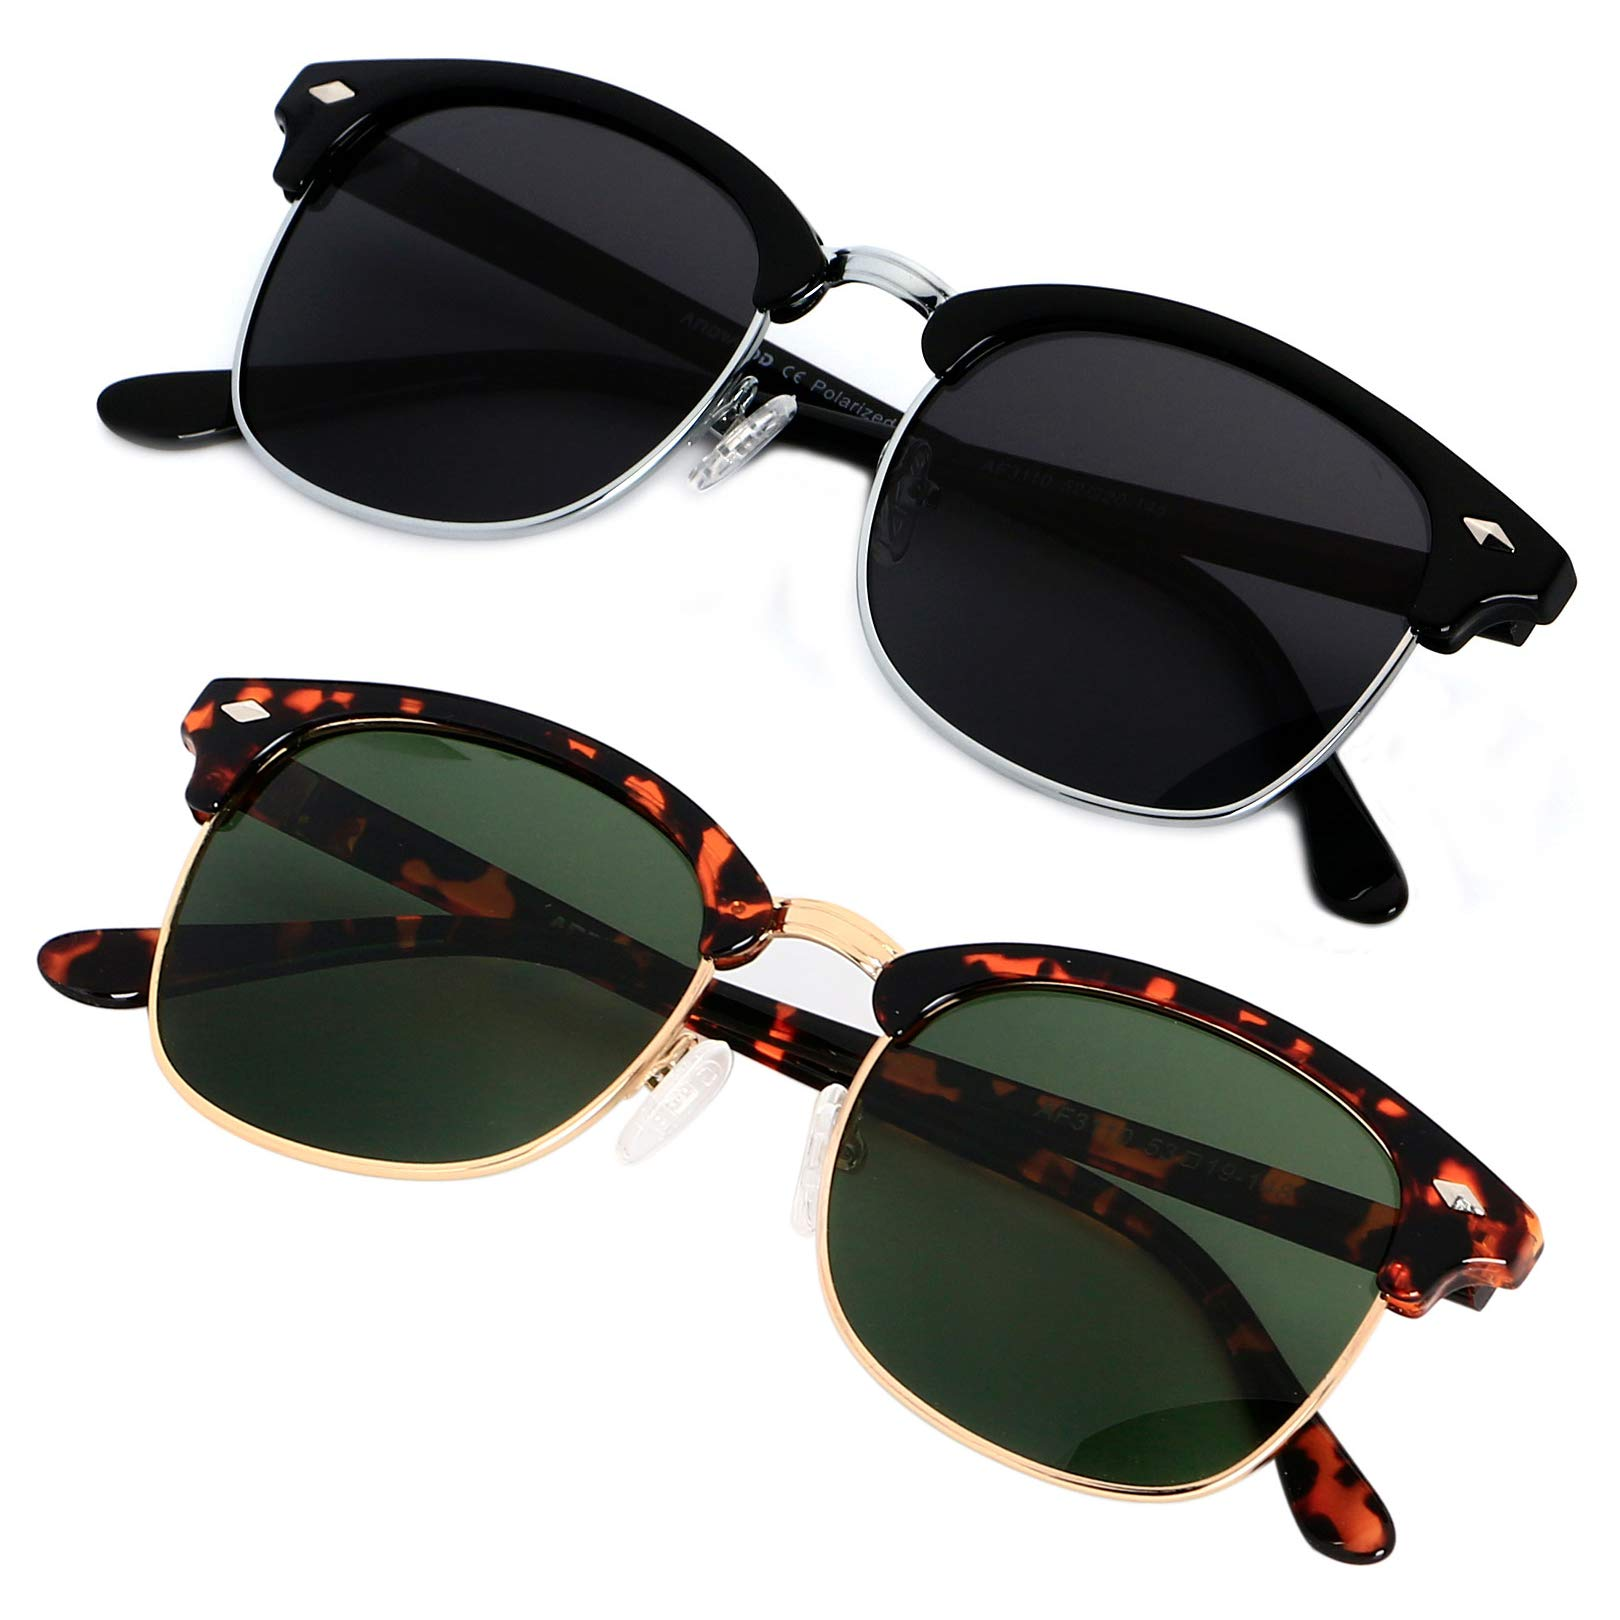 Polarized Sunglasses for Men Women Classic Half Frame Semi Rimless ANDWOOD Polarized Uv Protection by ANDWOOD